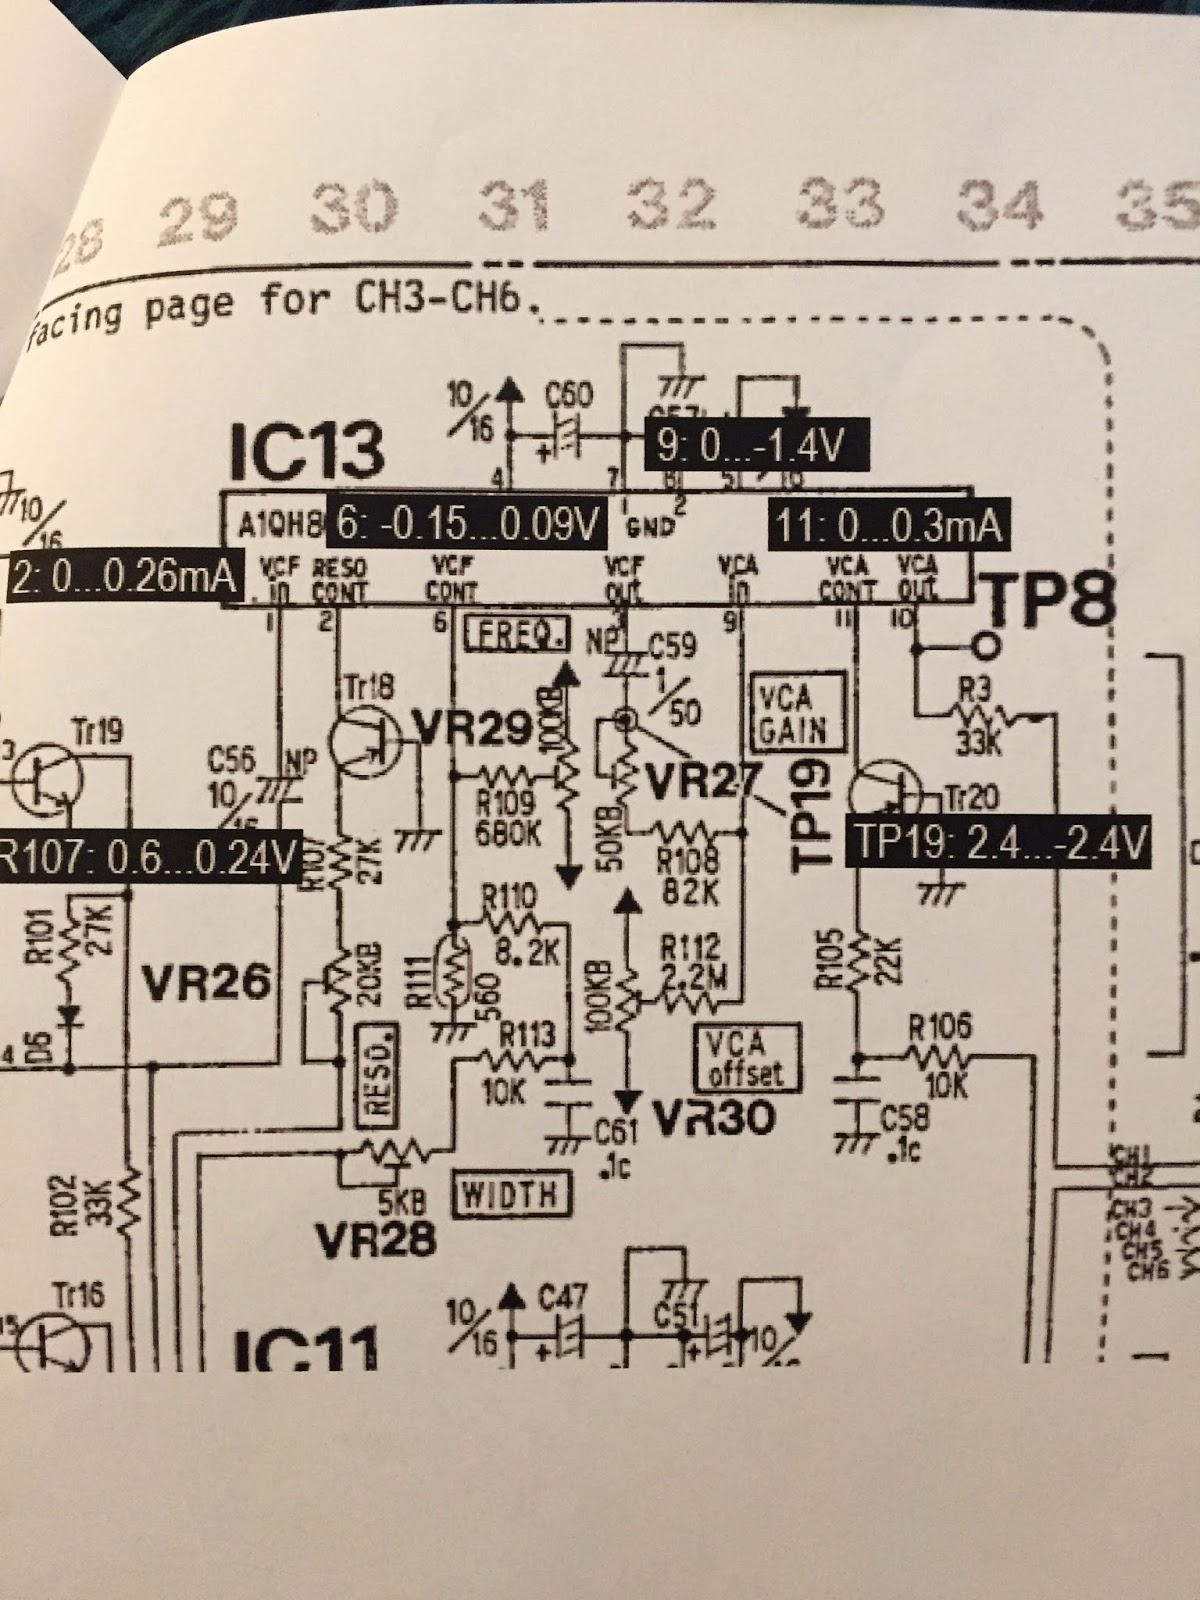 hight resolution of an annotated juno 106 service manual showing the various voltages i can t quite remember where i got it but i think analogue renaissance made it